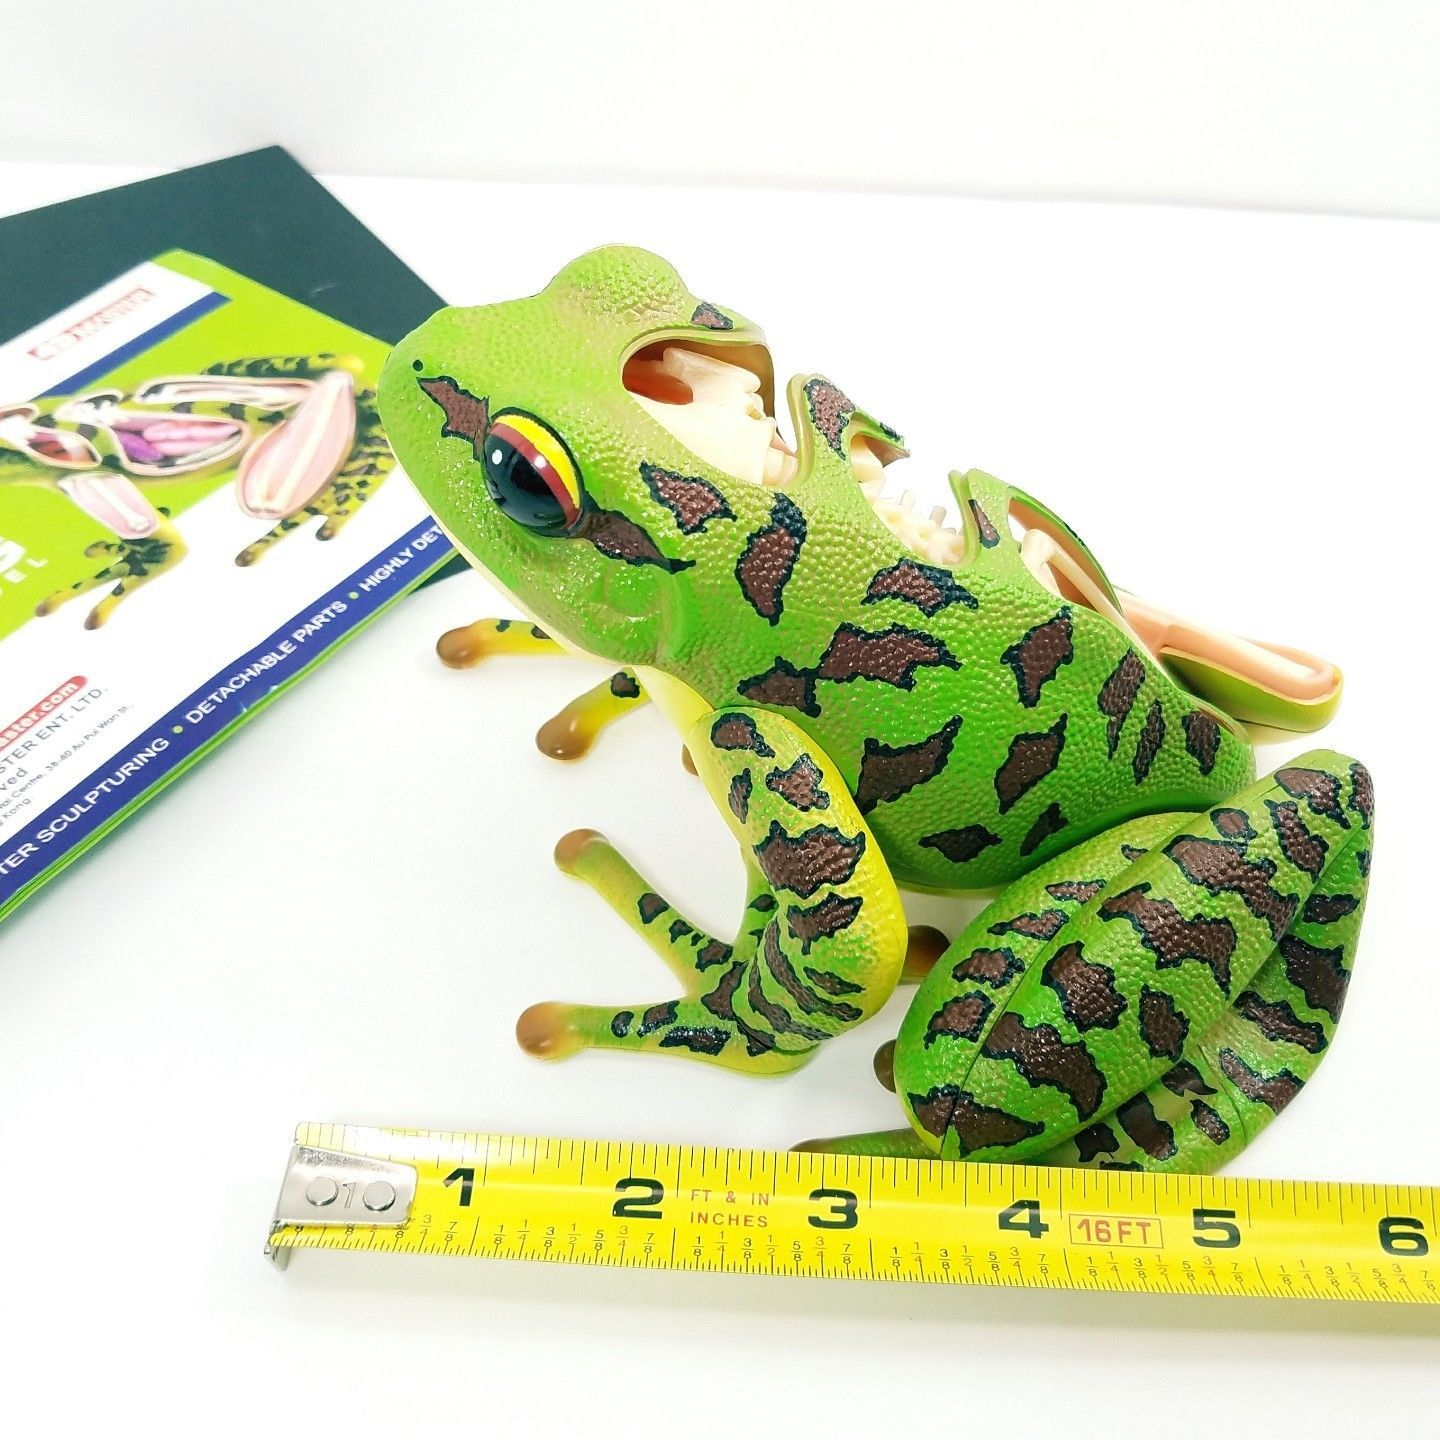 Fame 4D Master Frog 3D Anatomy Model and 50 similar items